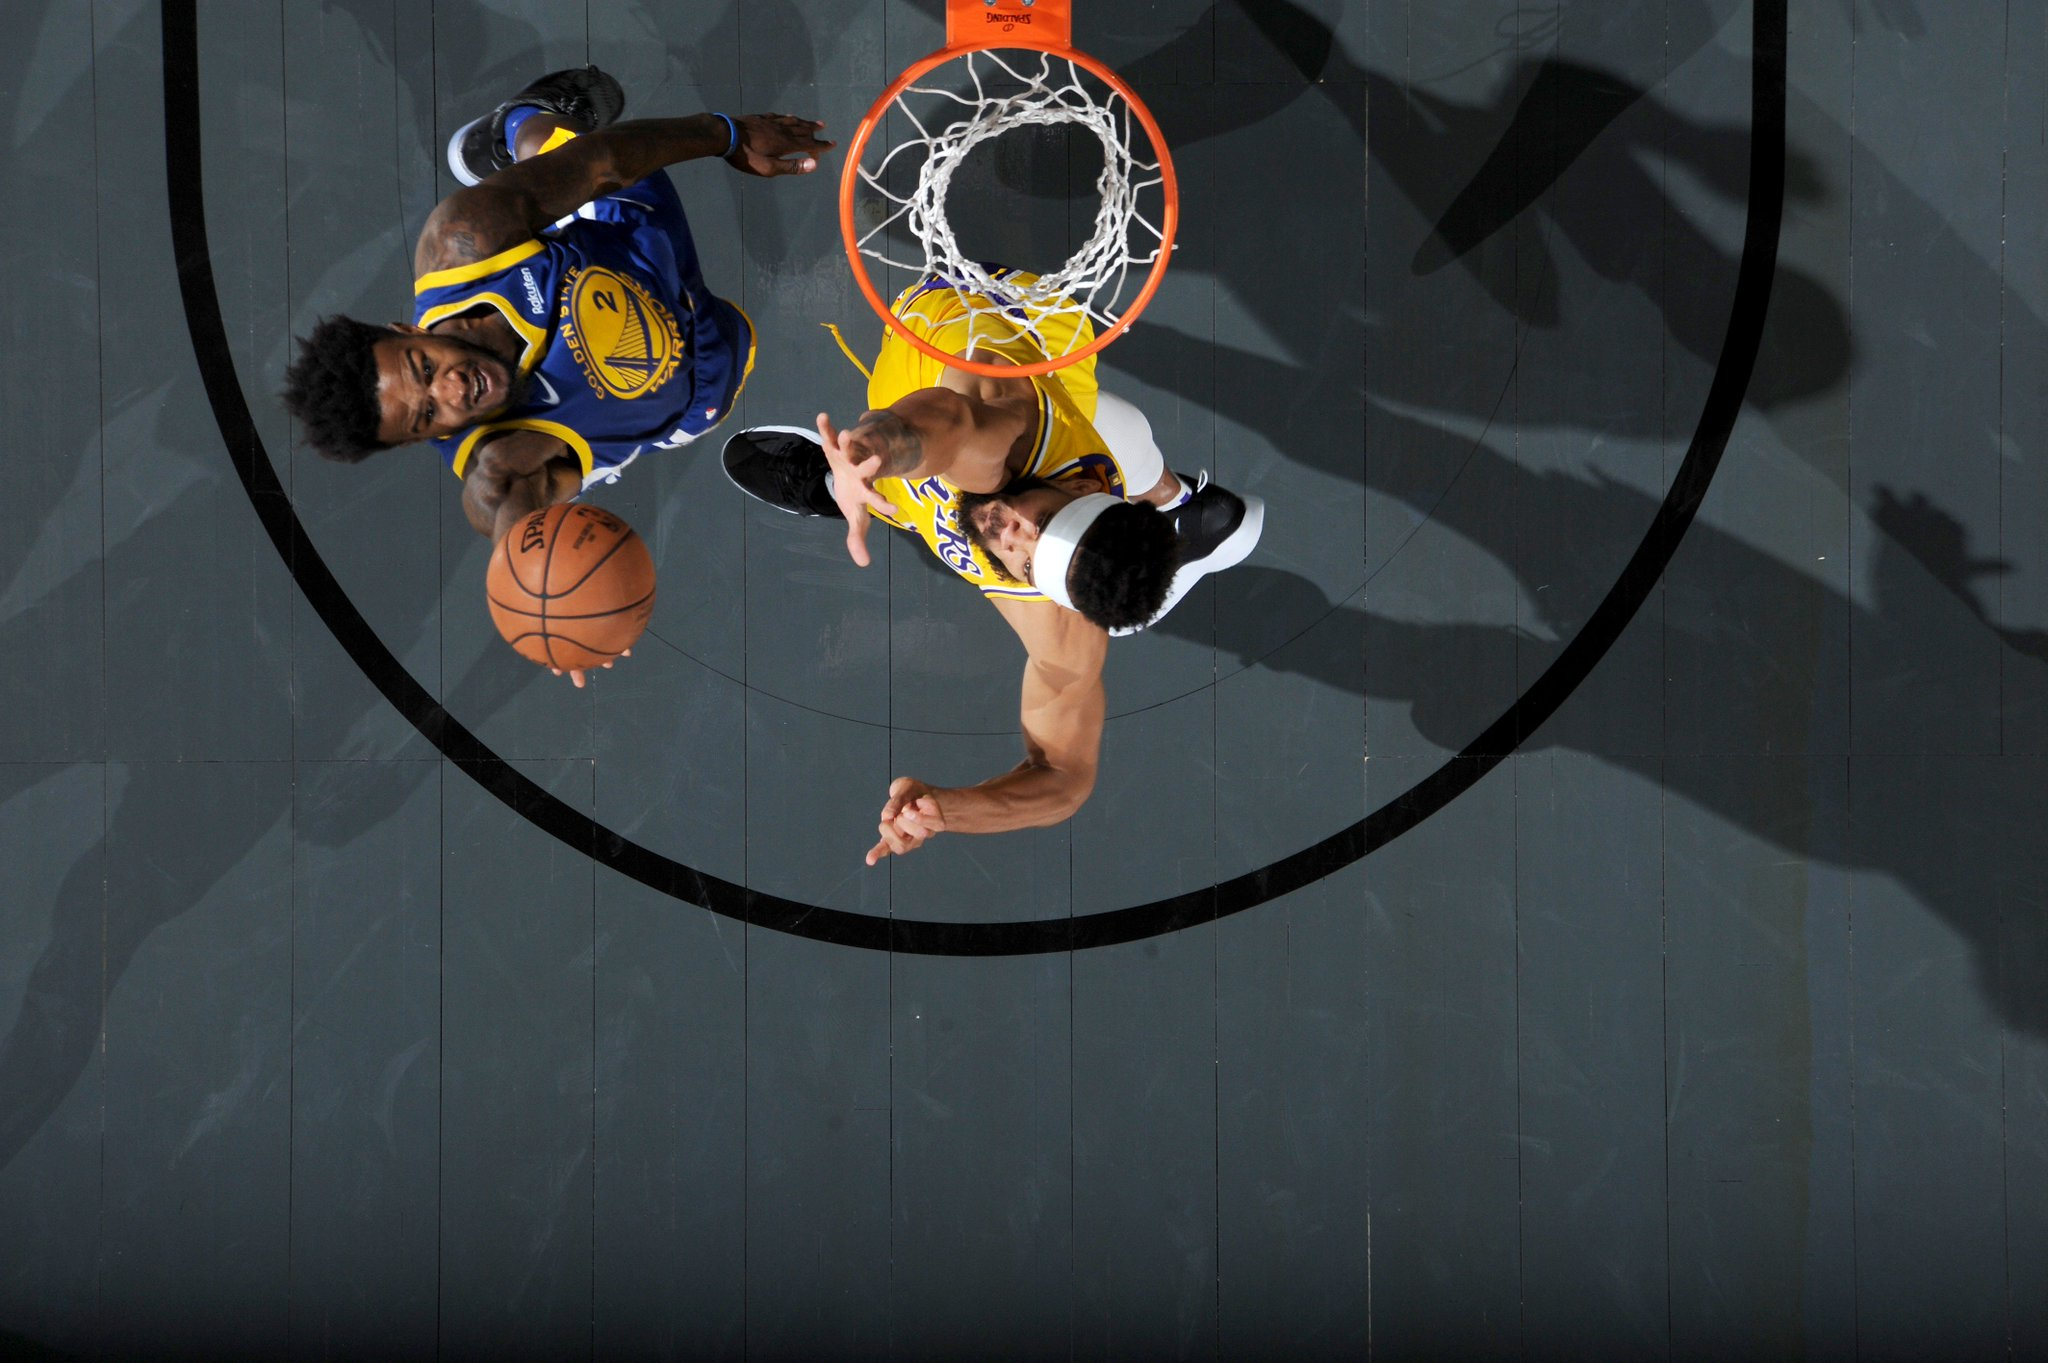 Check out all the best highlights from last night's game. �� #JBLxGSW https://t.co/Mq2CUlFMNp